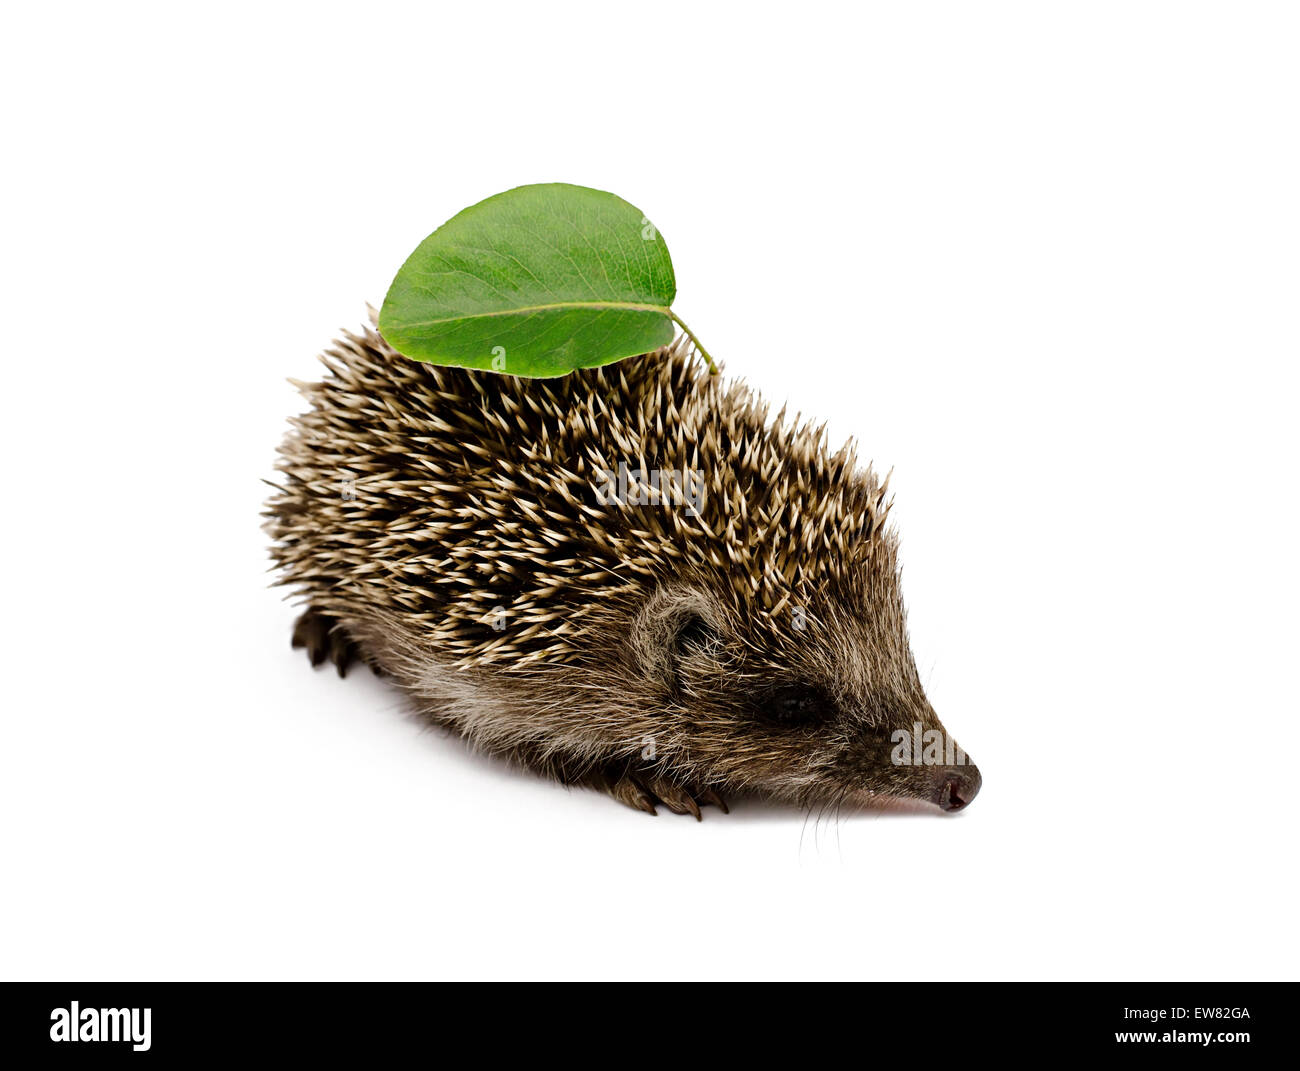 hedgehog with leaves on a white background - Stock Image